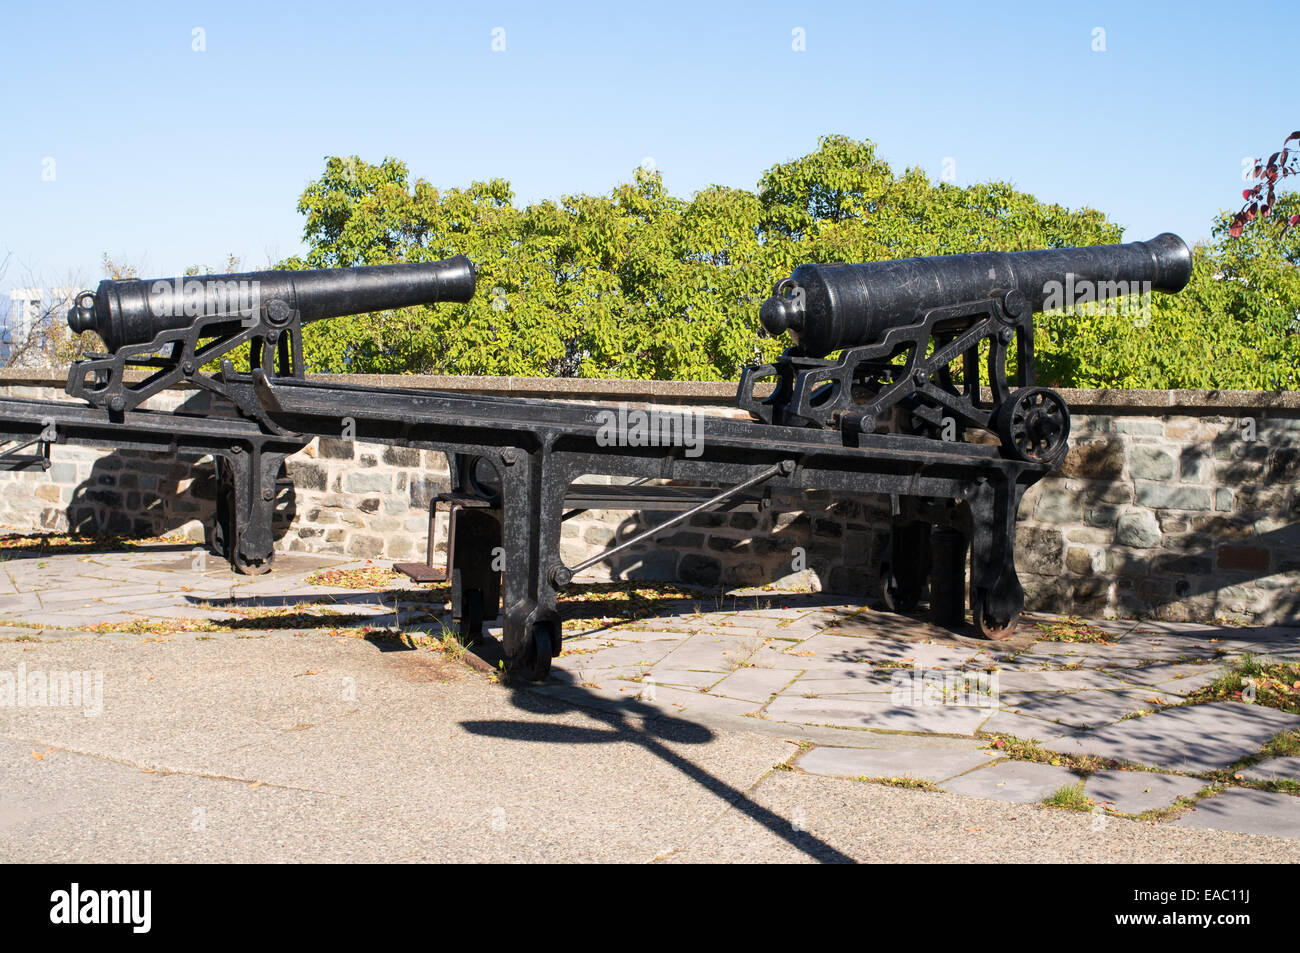 Two old British cannon mounted on swiveling carriages, part of the Quebec battery, Canada. - Stock Image